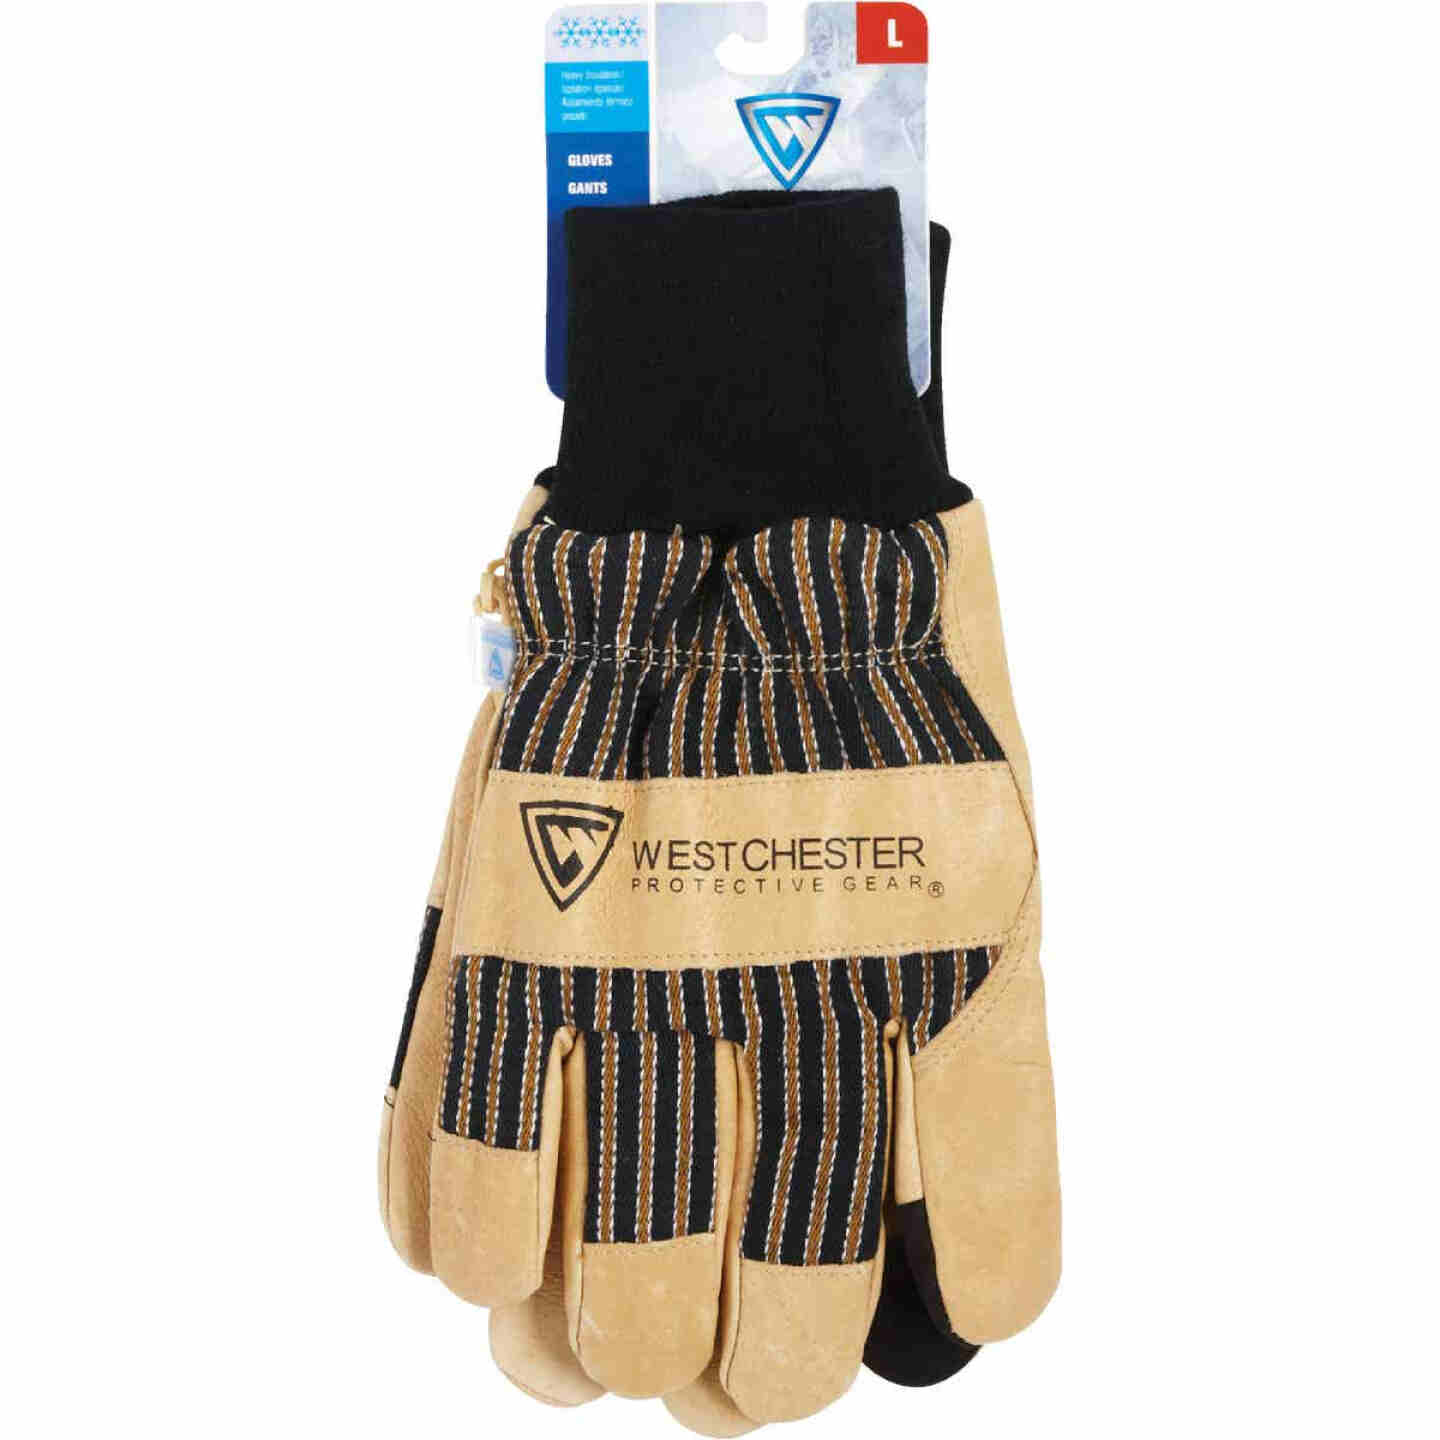 West Chester Men's Large Pigskin Leather Winter Glove with Knit Wrist Image 2